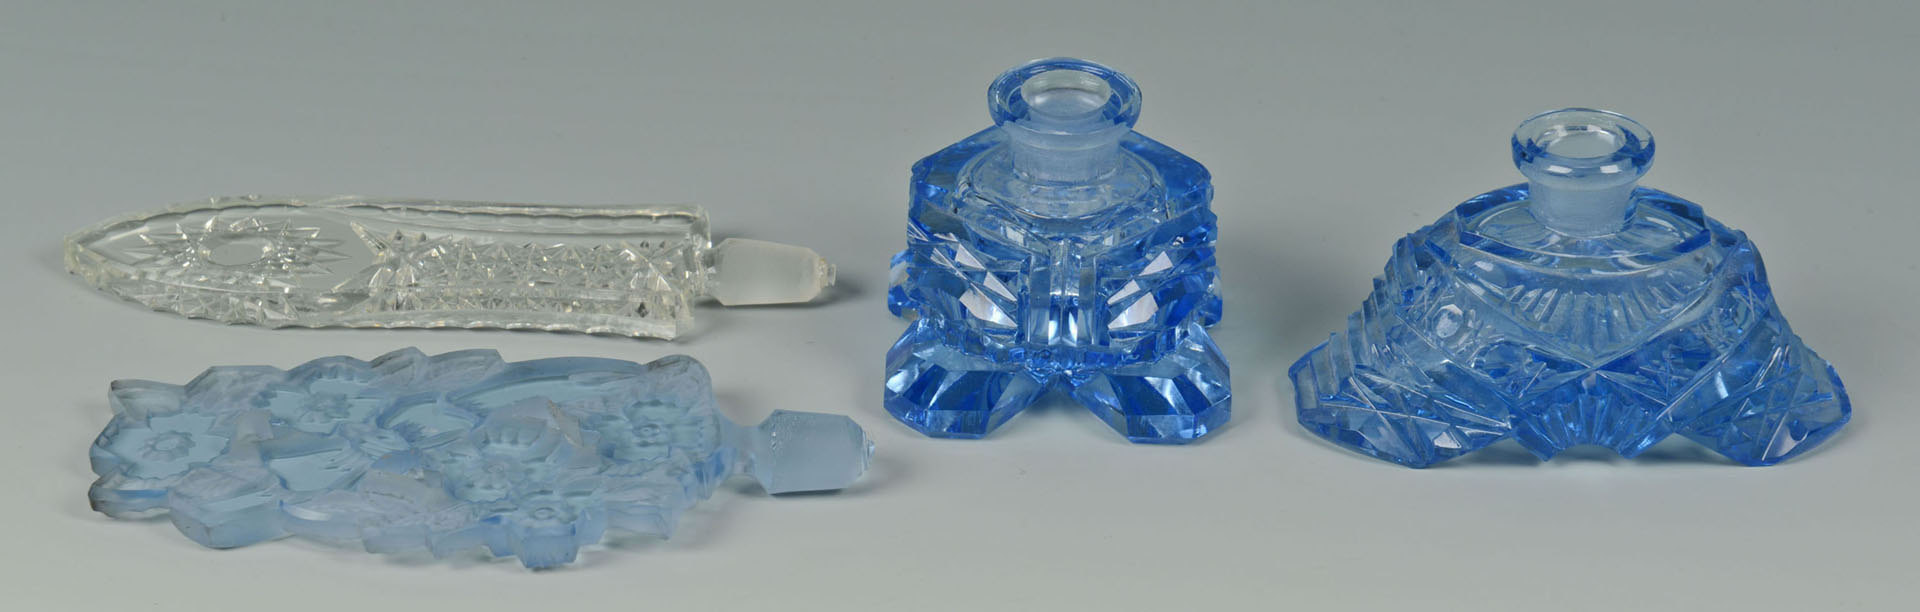 Lot 3088262: 2 Czechoslavakia Cut Crystal Perfume Bottles